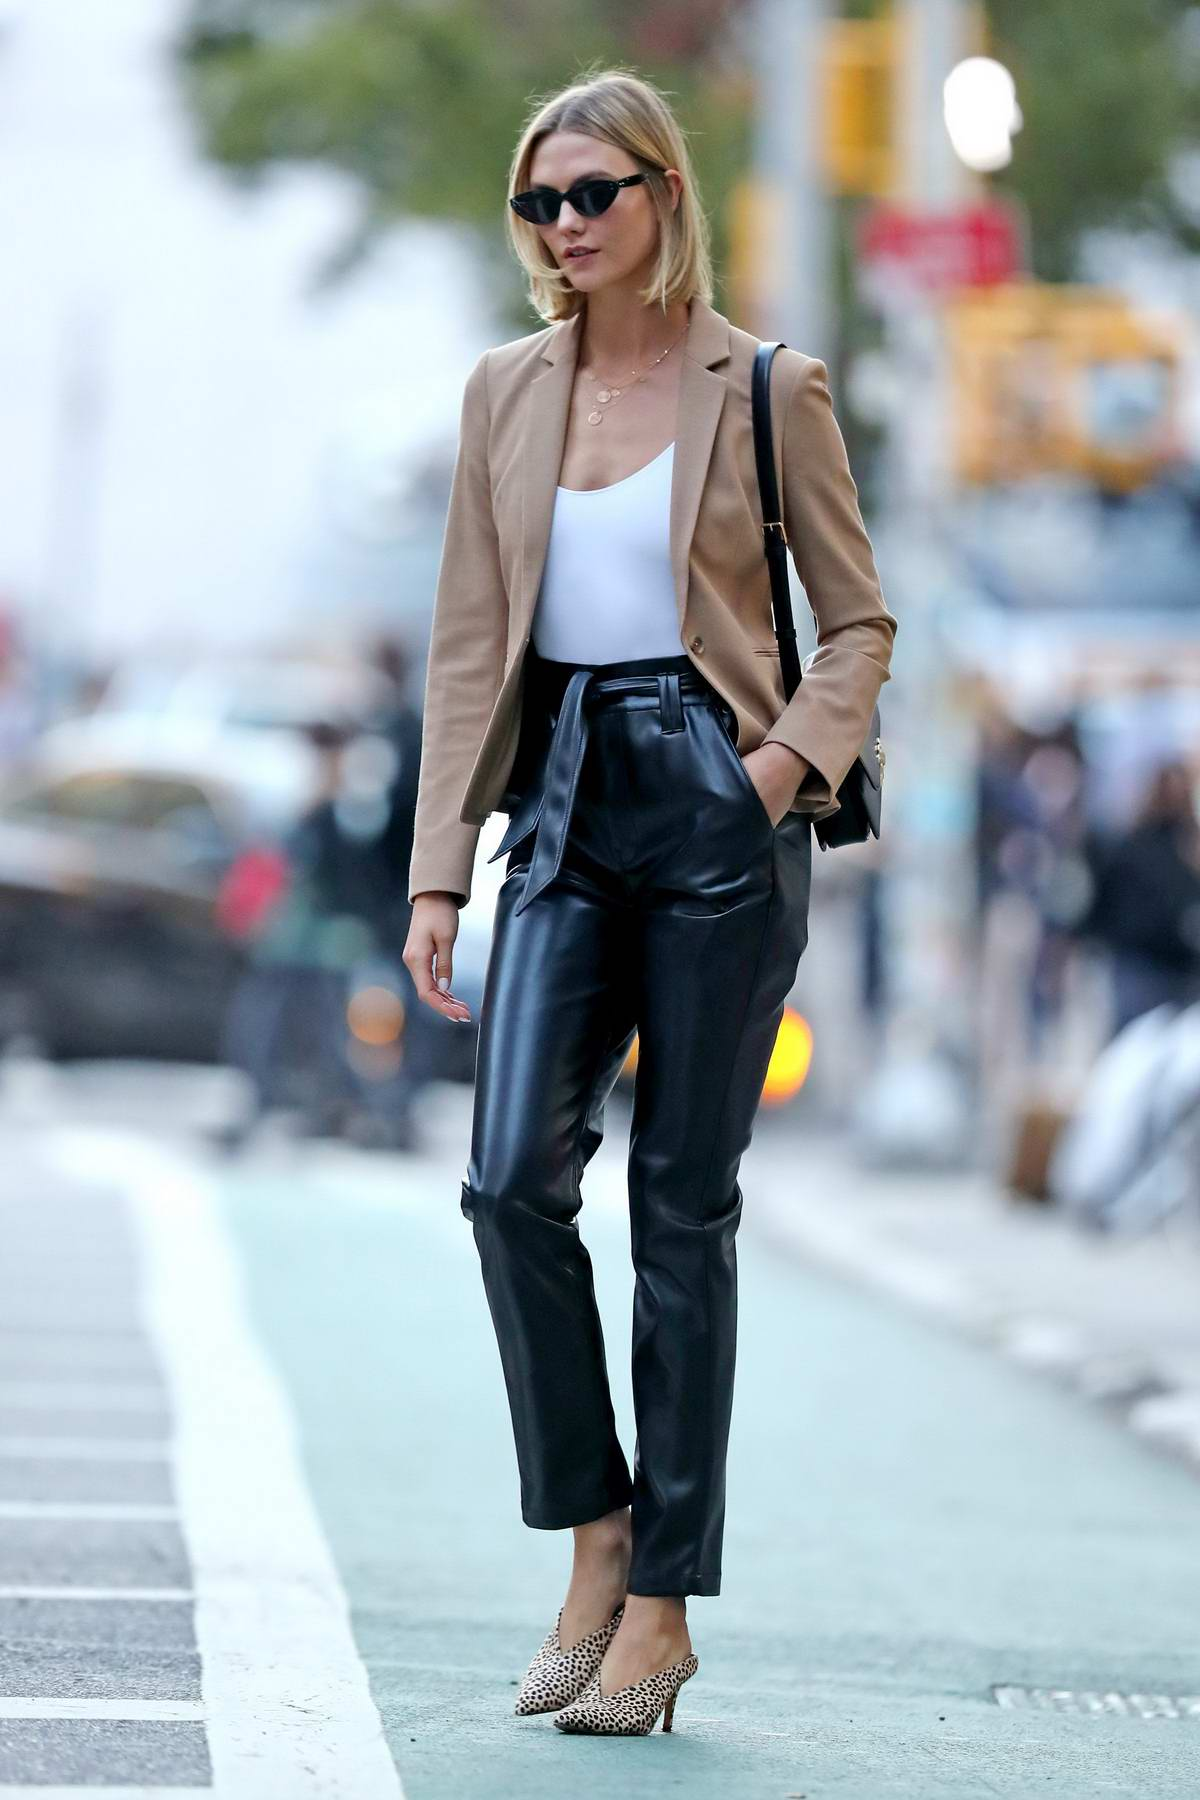 Karlie Kloss looks fashionable in a beige blazer and black leather pants as she steps out in New York City